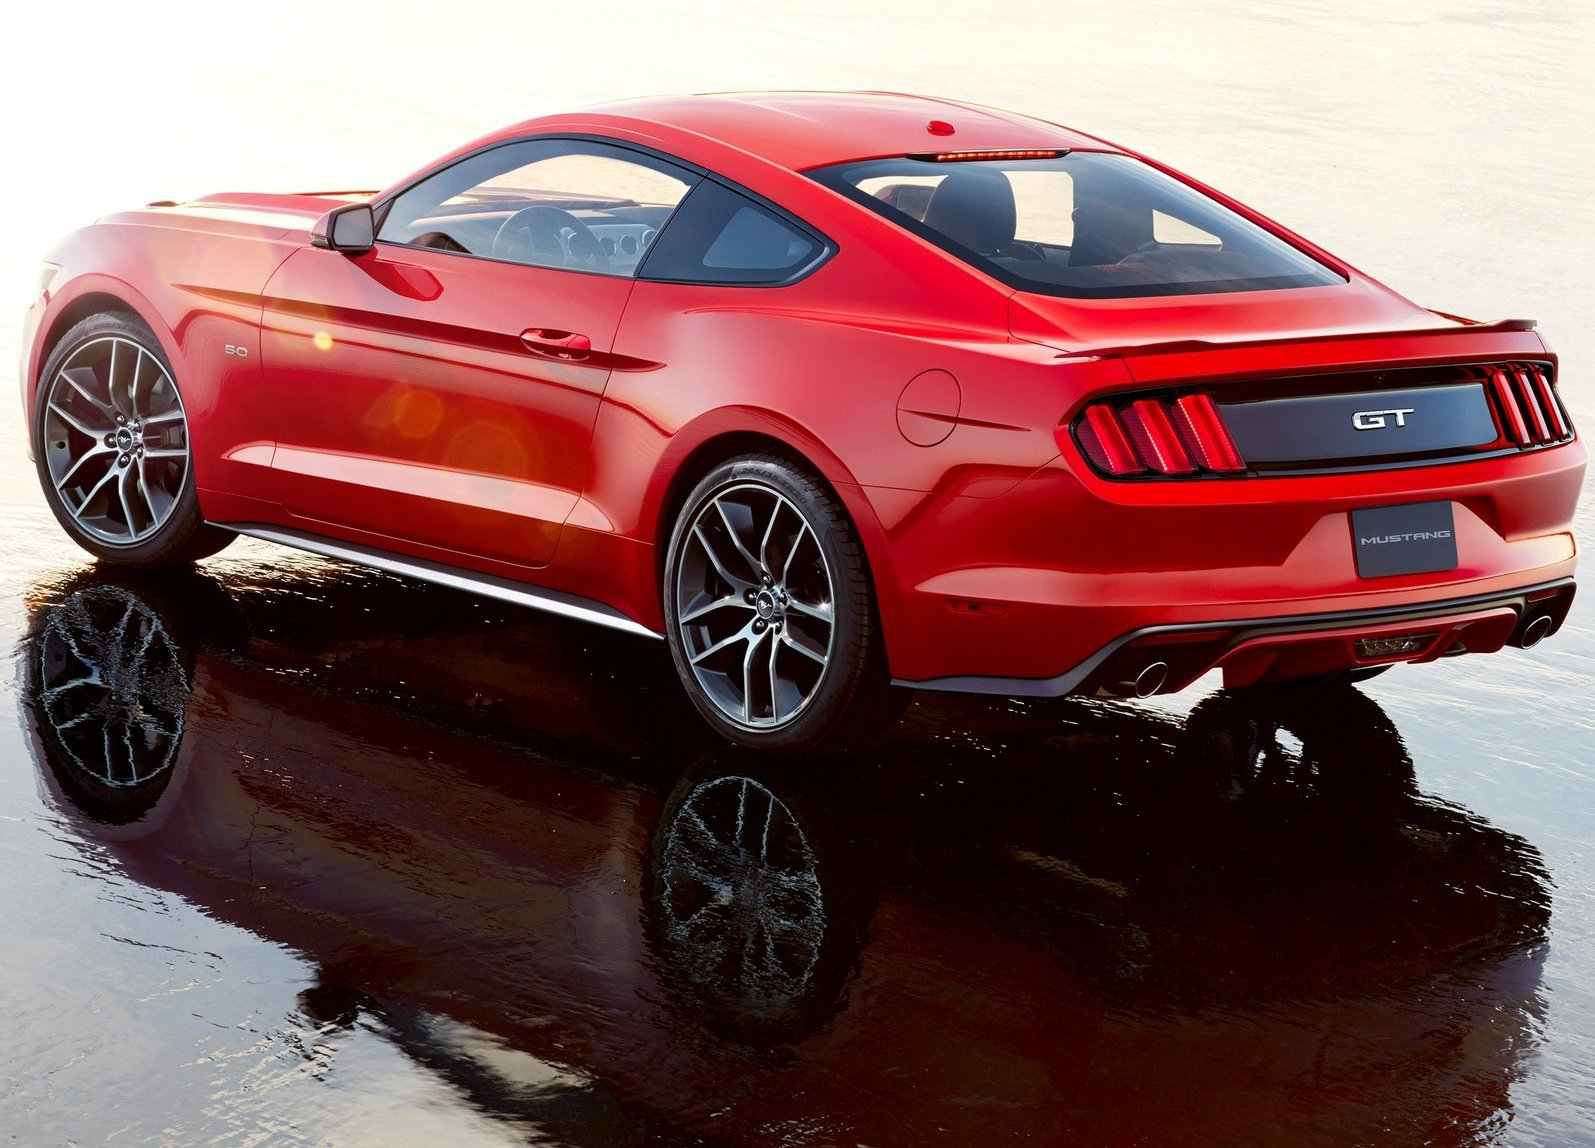 Ford-Mustang_GT_2015_1600x1200_wallpaper_11.jpg